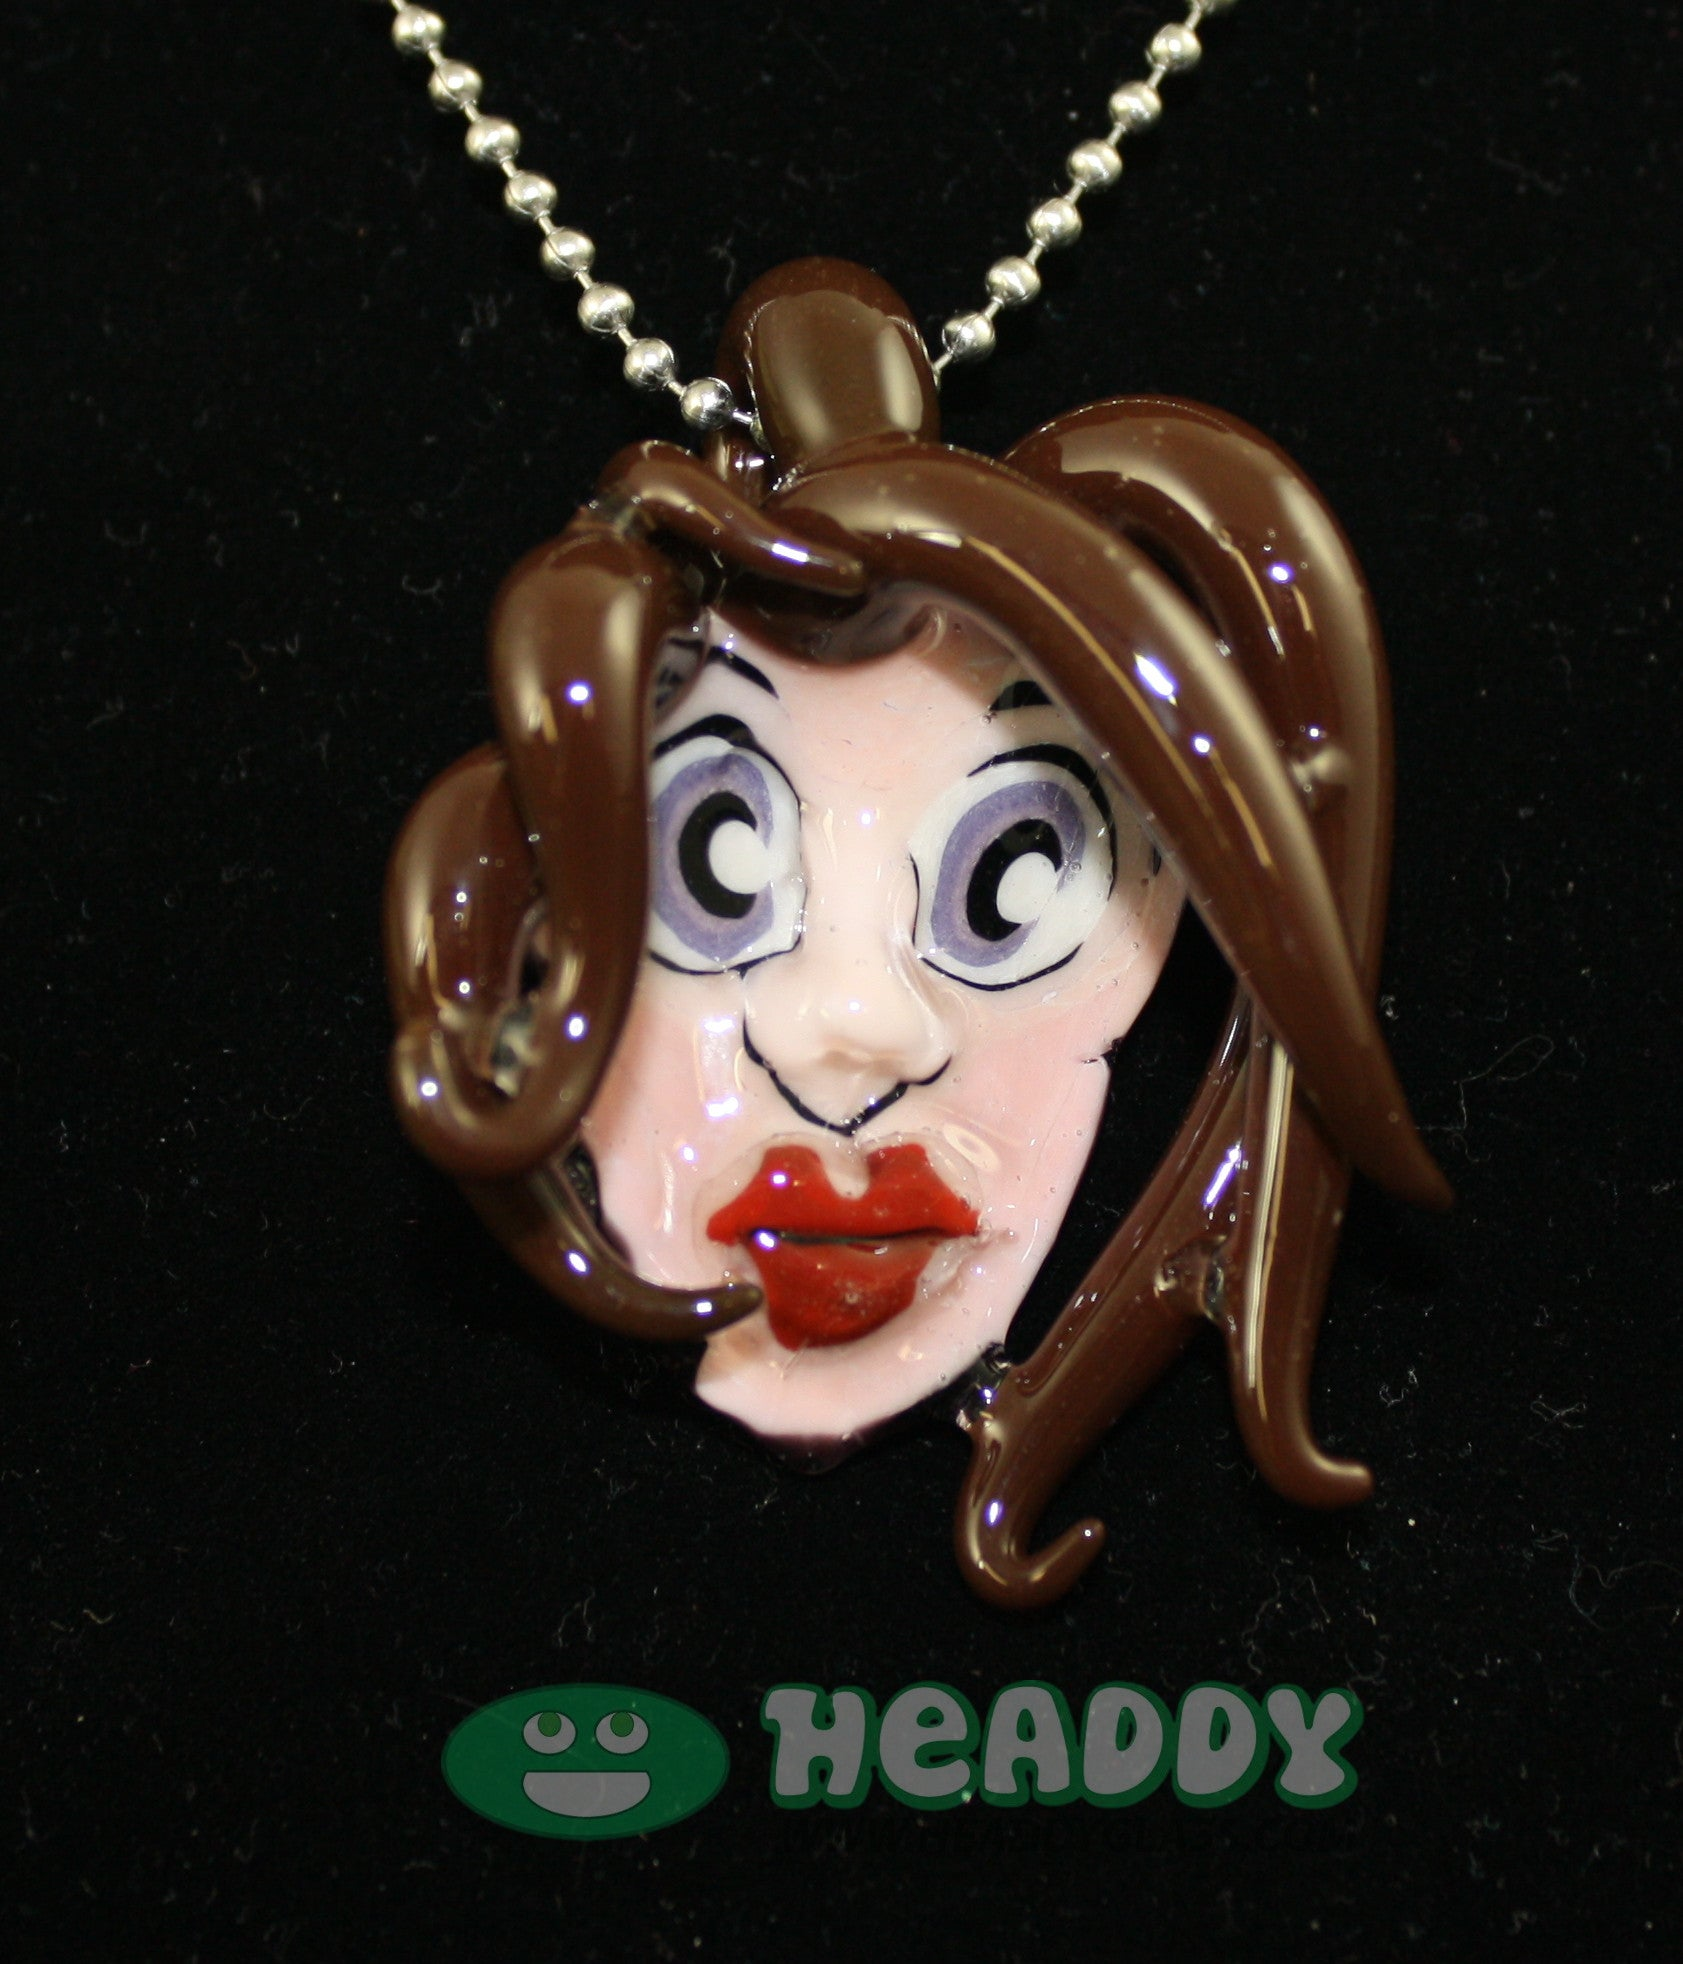 Grimm 3D pendant #1 - Headdy Glass